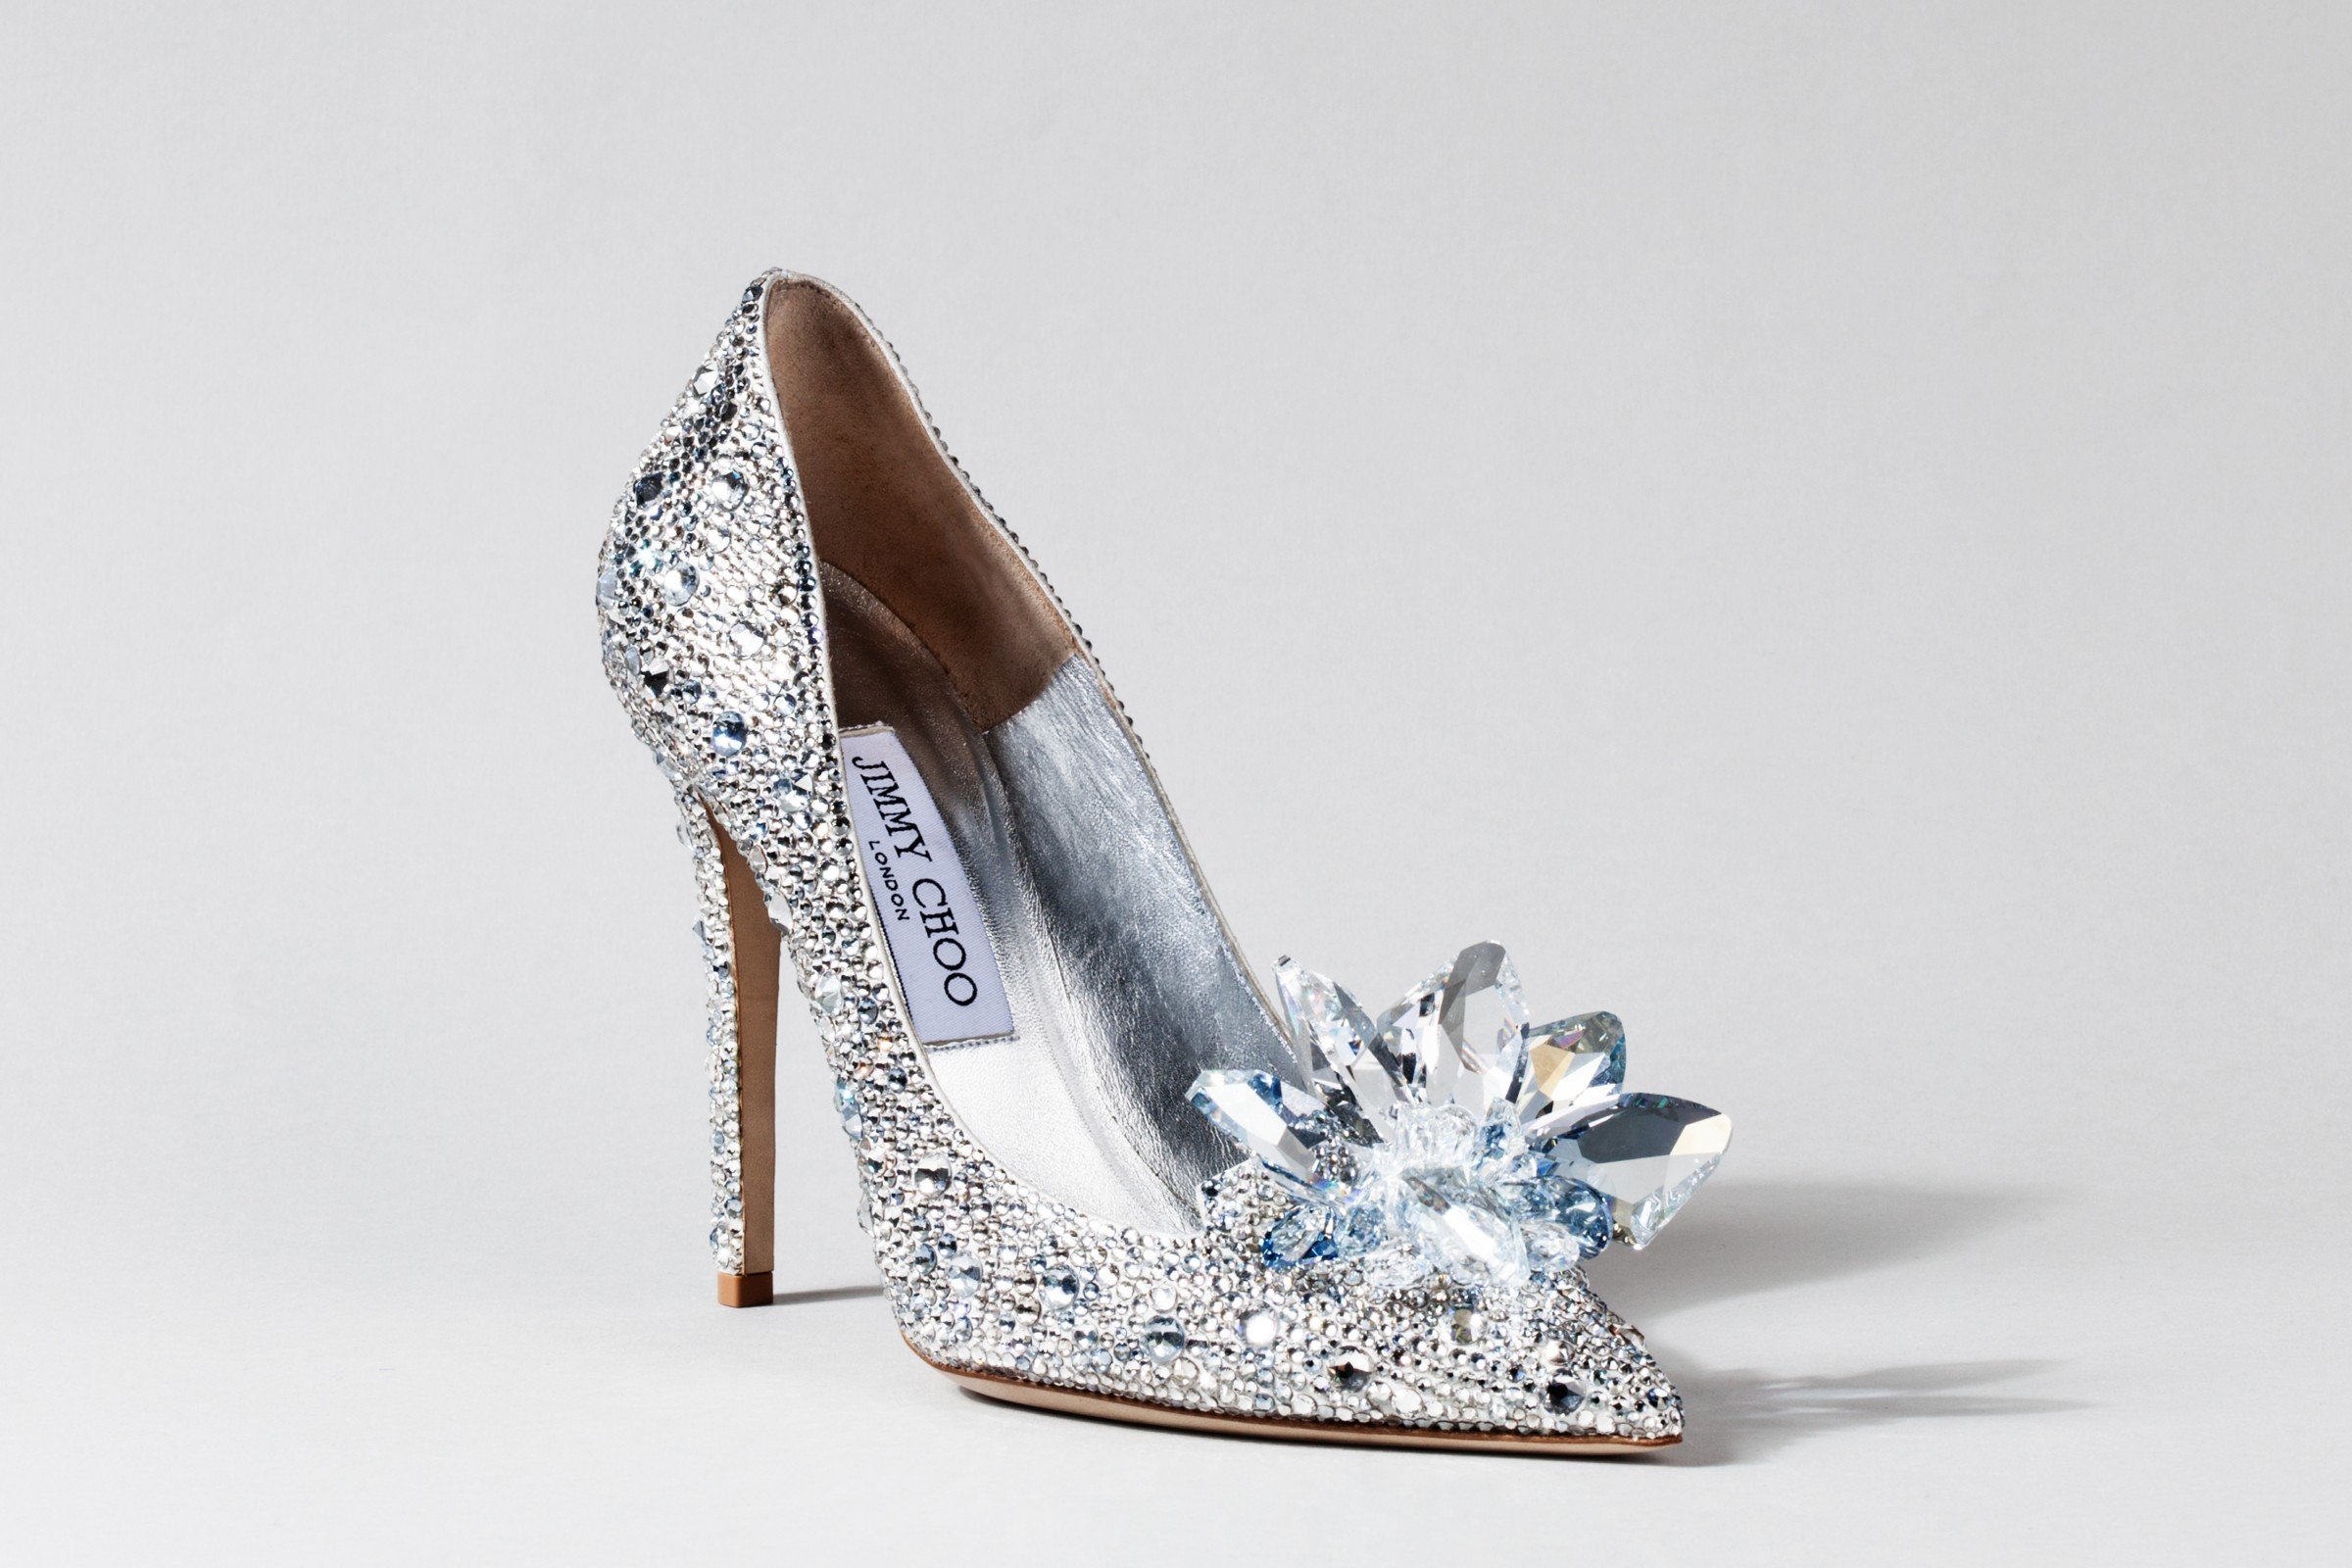 Will the Glass Slipper Fit?